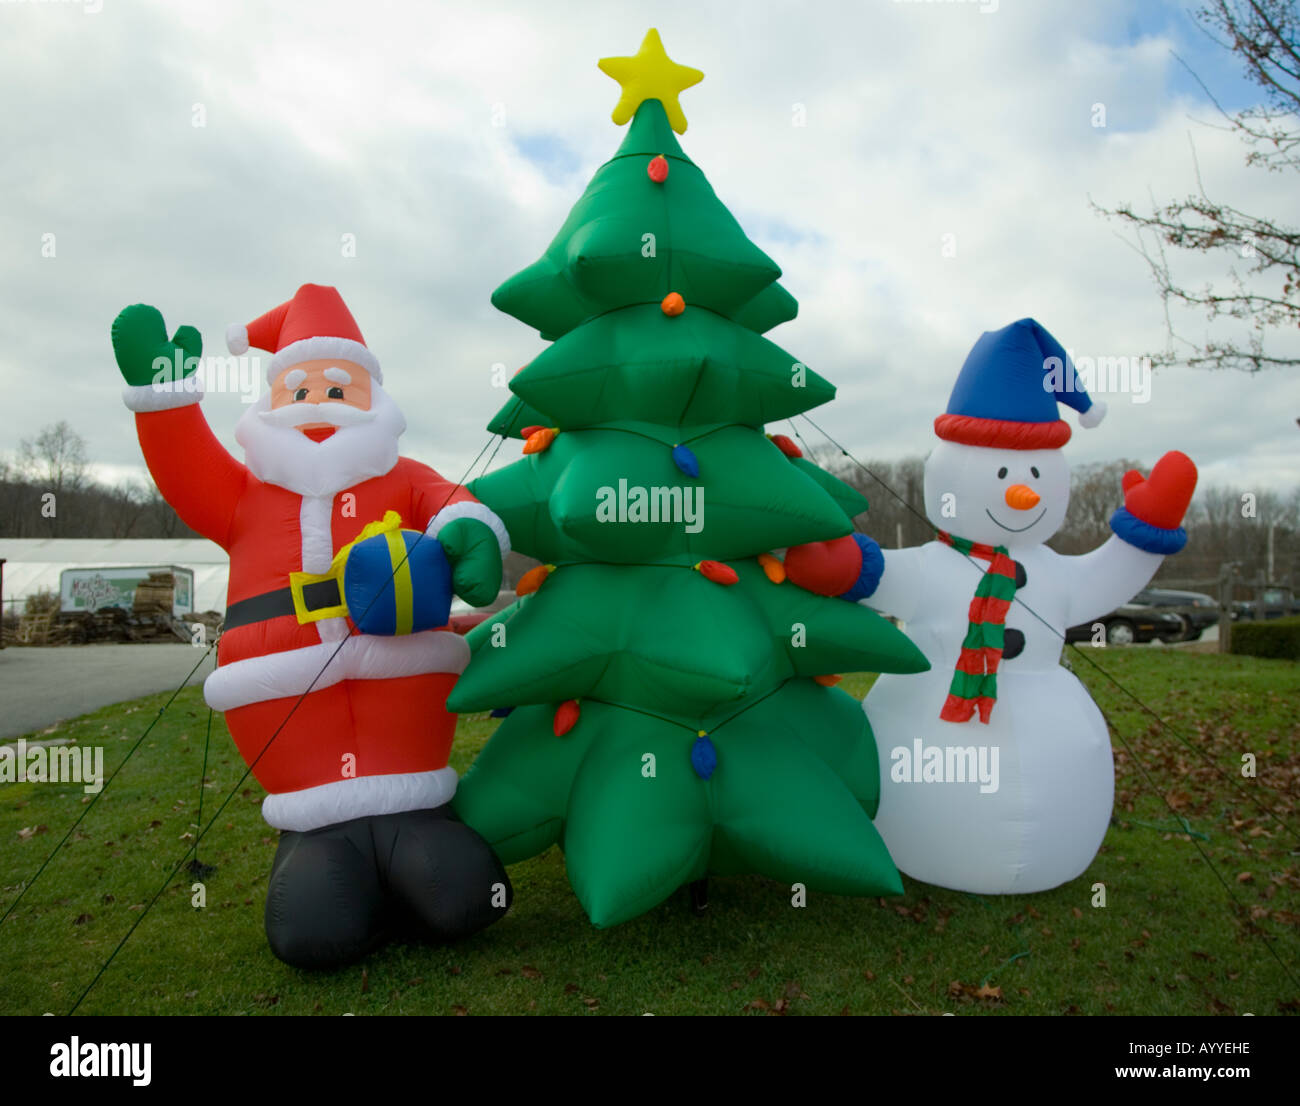 Inflatable christmas decorations for sale stock photo for Inflatable christmas decorations